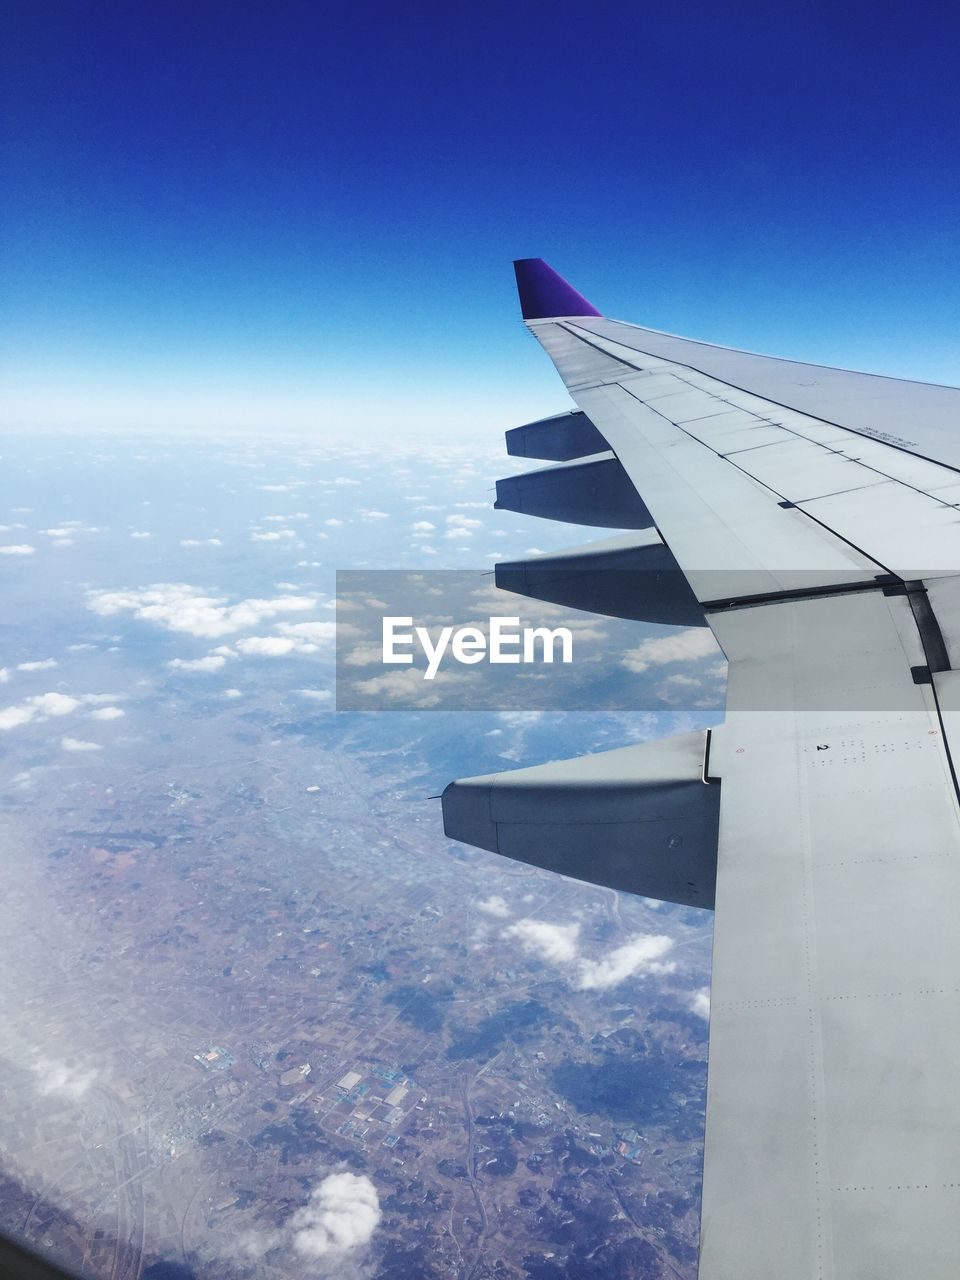 nature, transportation, airplane, journey, airplane wing, blue, sky, beauty in nature, mode of transport, no people, day, scenics, outdoors, aerial view, aircraft wing, air vehicle, flying